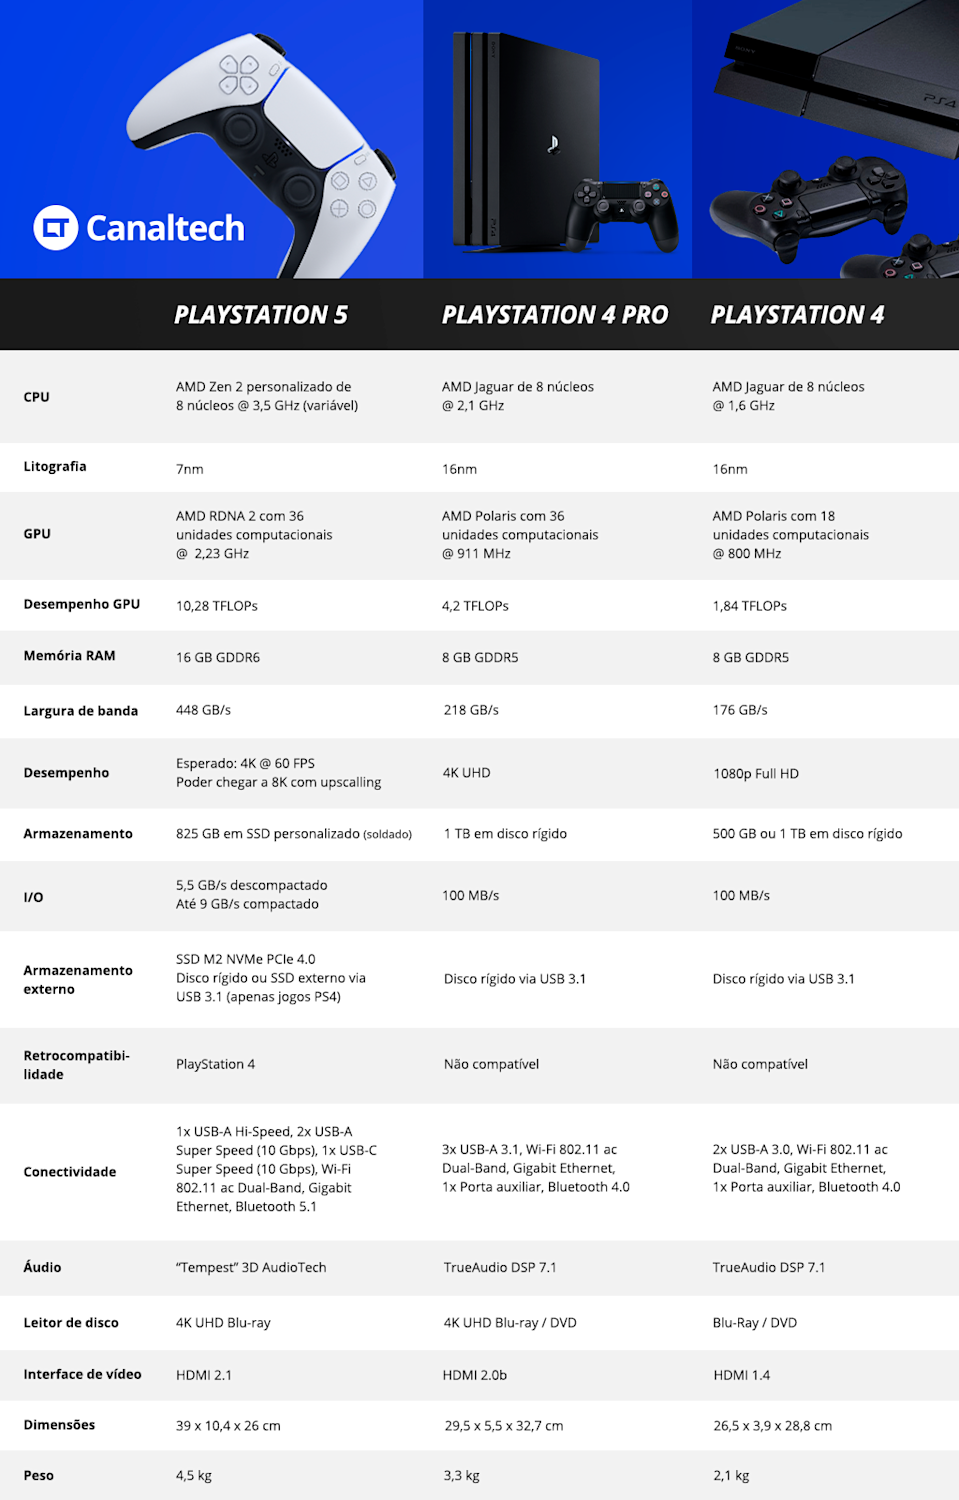 Tabela comparativa de especificações do PlayStation 5, PlayStation 4 Pro e PlayStation 4